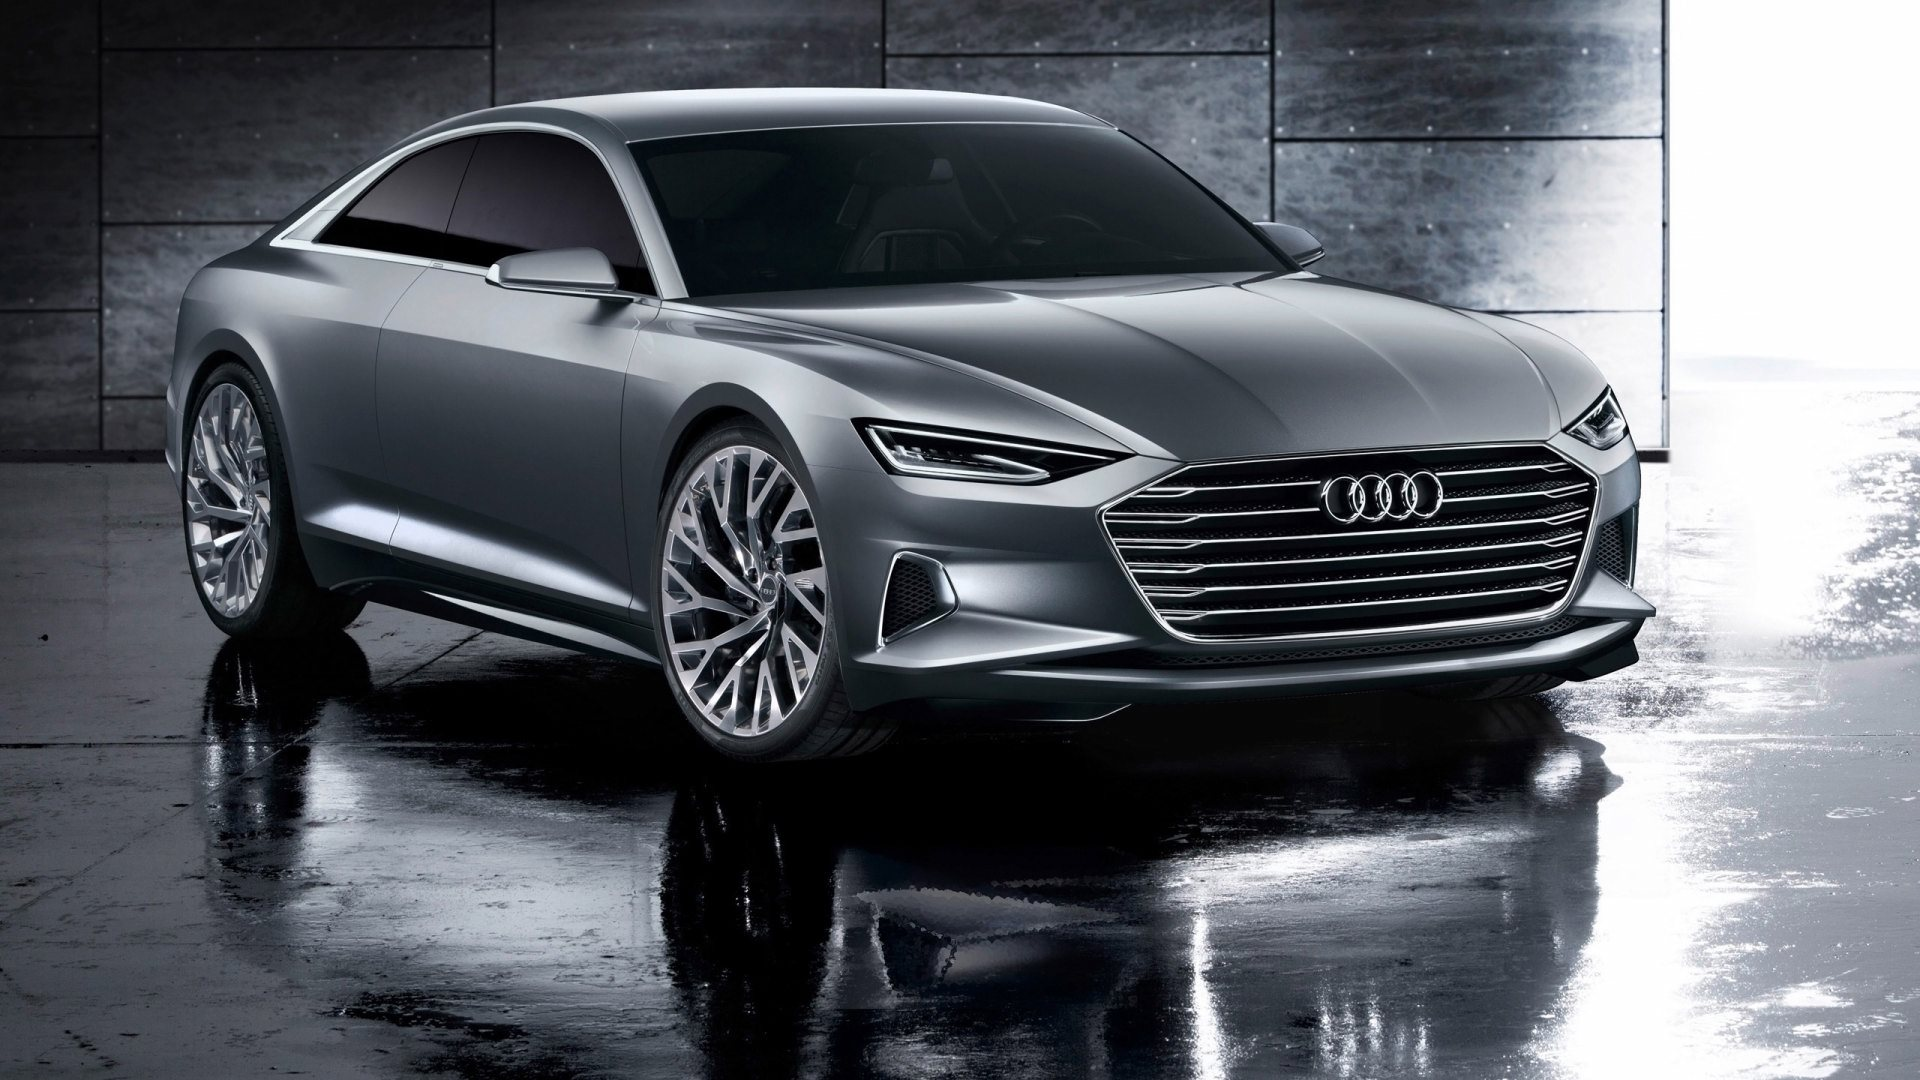 audi prologue wallpaper background